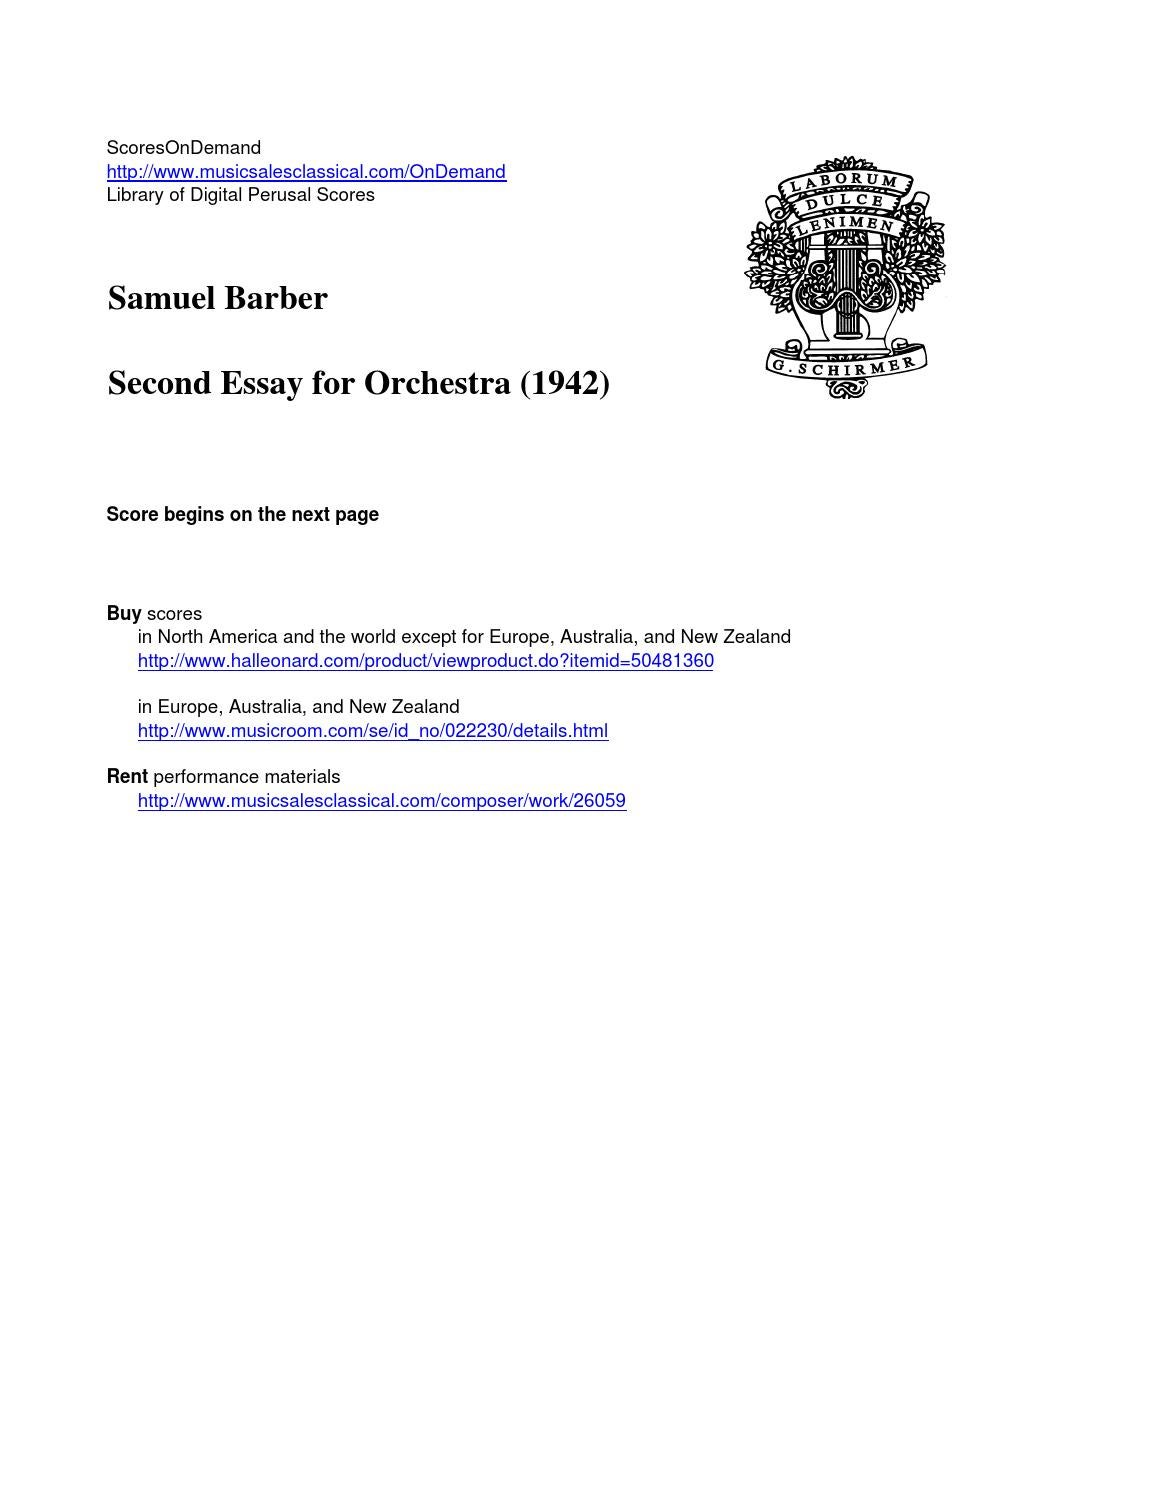 barber second essay for orchestra by scoresondemand issuu